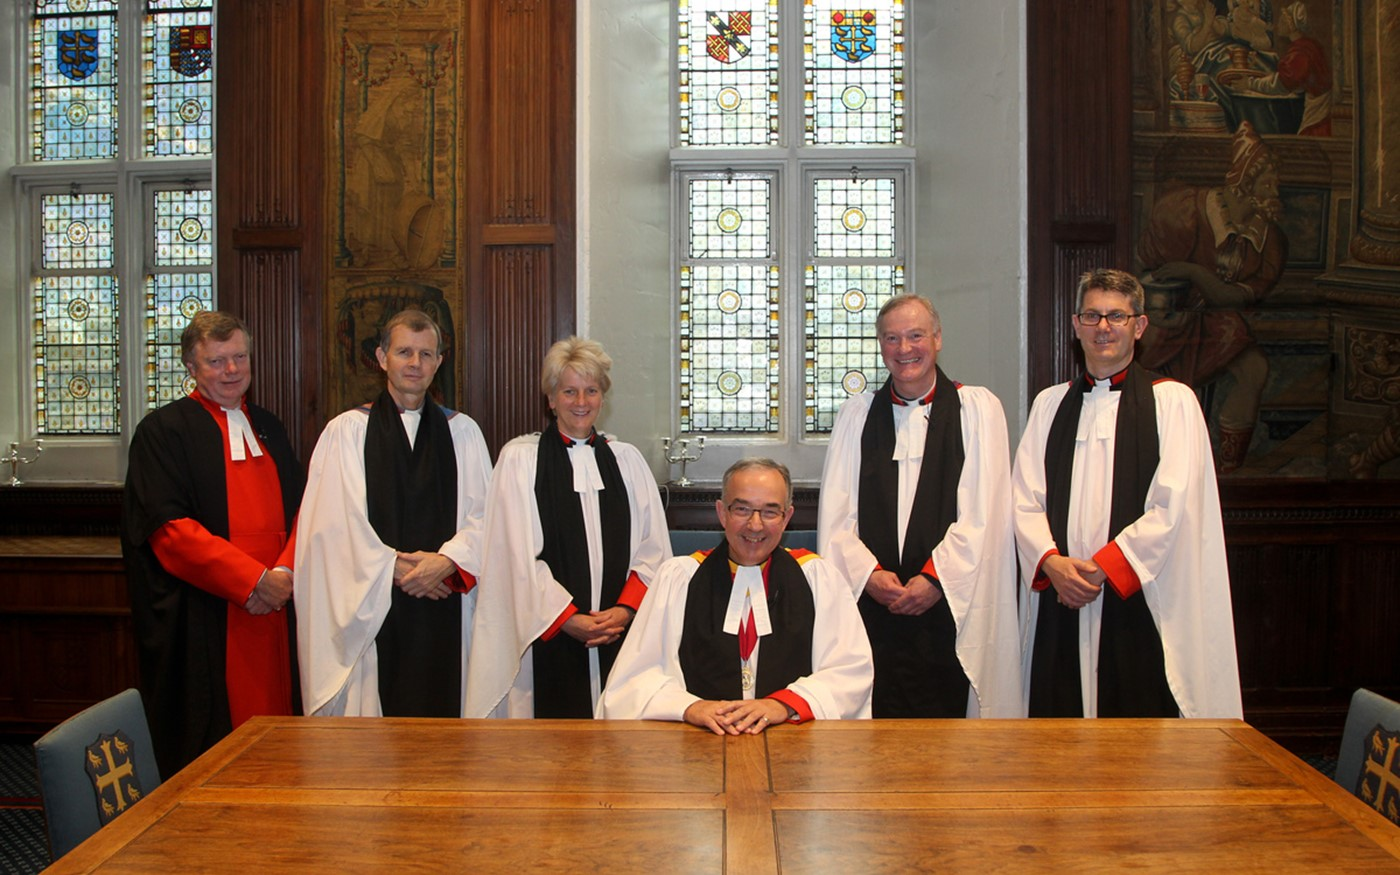 Following the service, Canon Stanton was installed at his place in Chapter within the Jerusalem Chamber